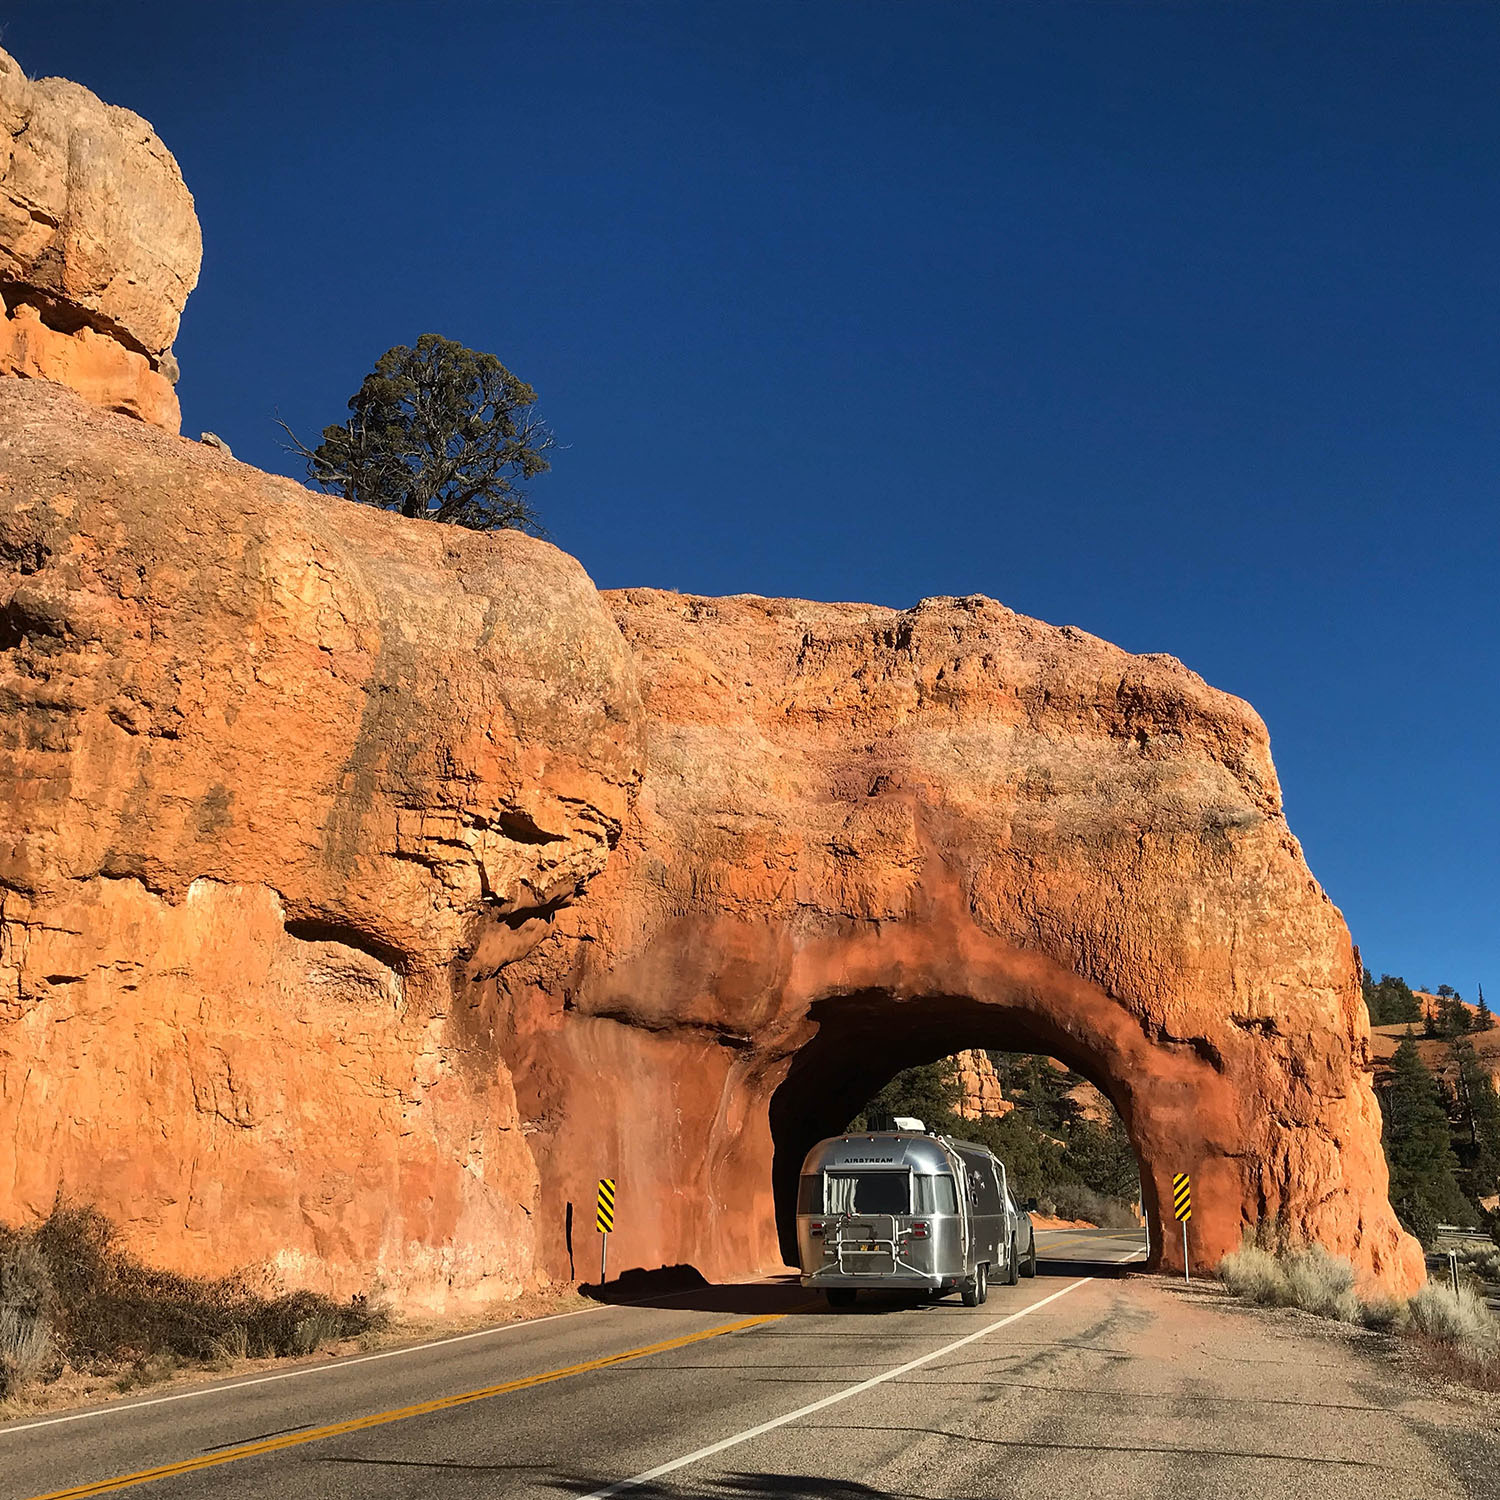 I had to get a classic Airstream tunnel shot at Red Canyon